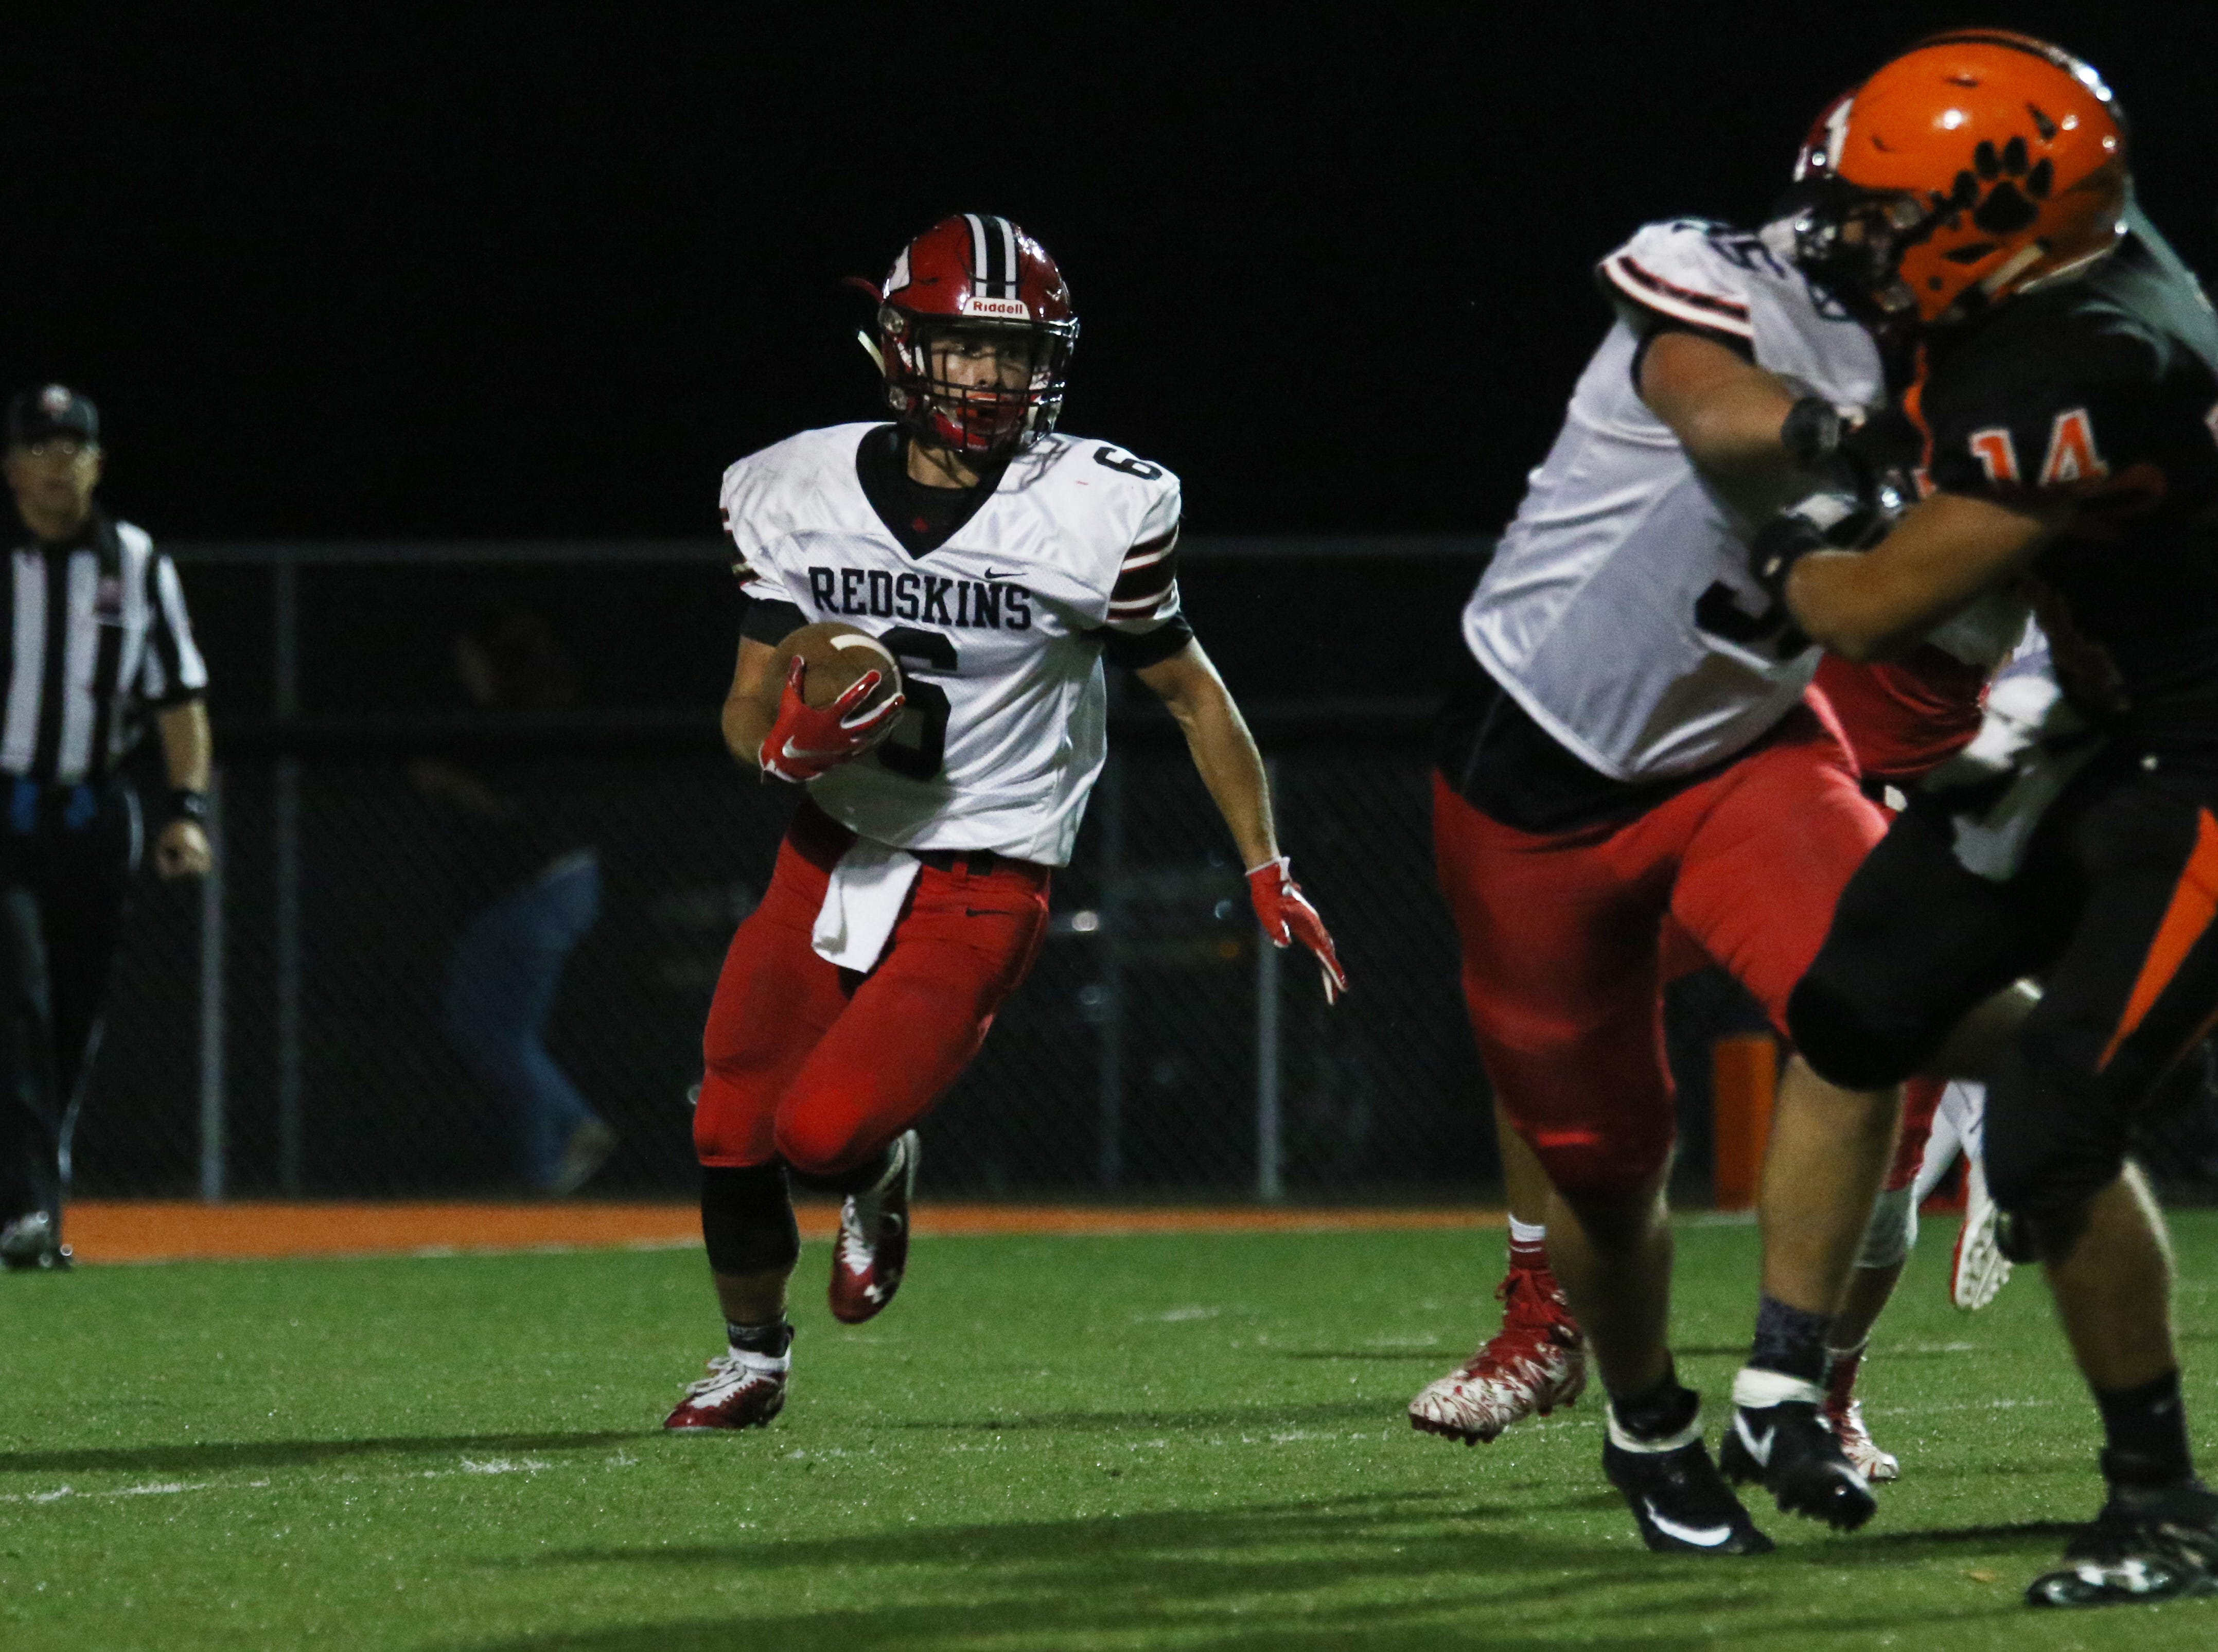 Coshocton's Andrew Kittell carries the ball against New Lexington.